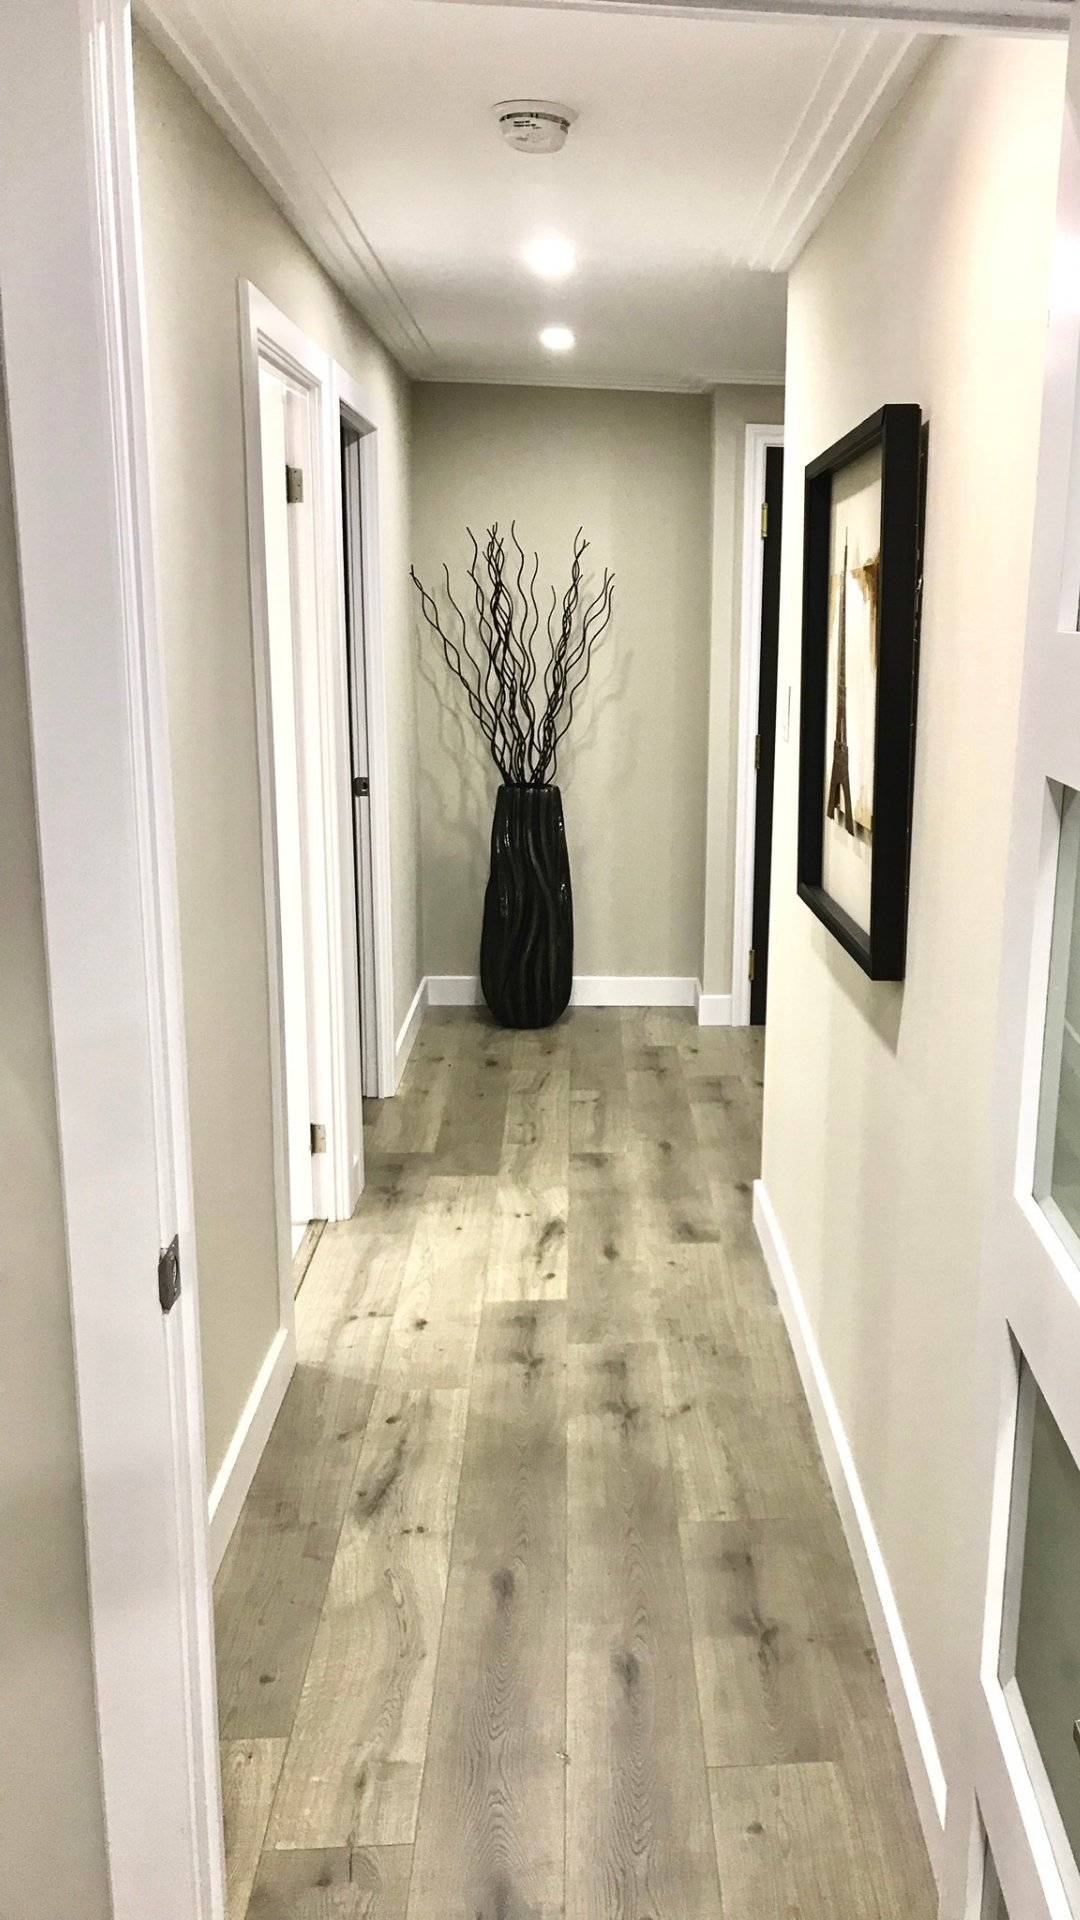 Interior painting for residential hallway.